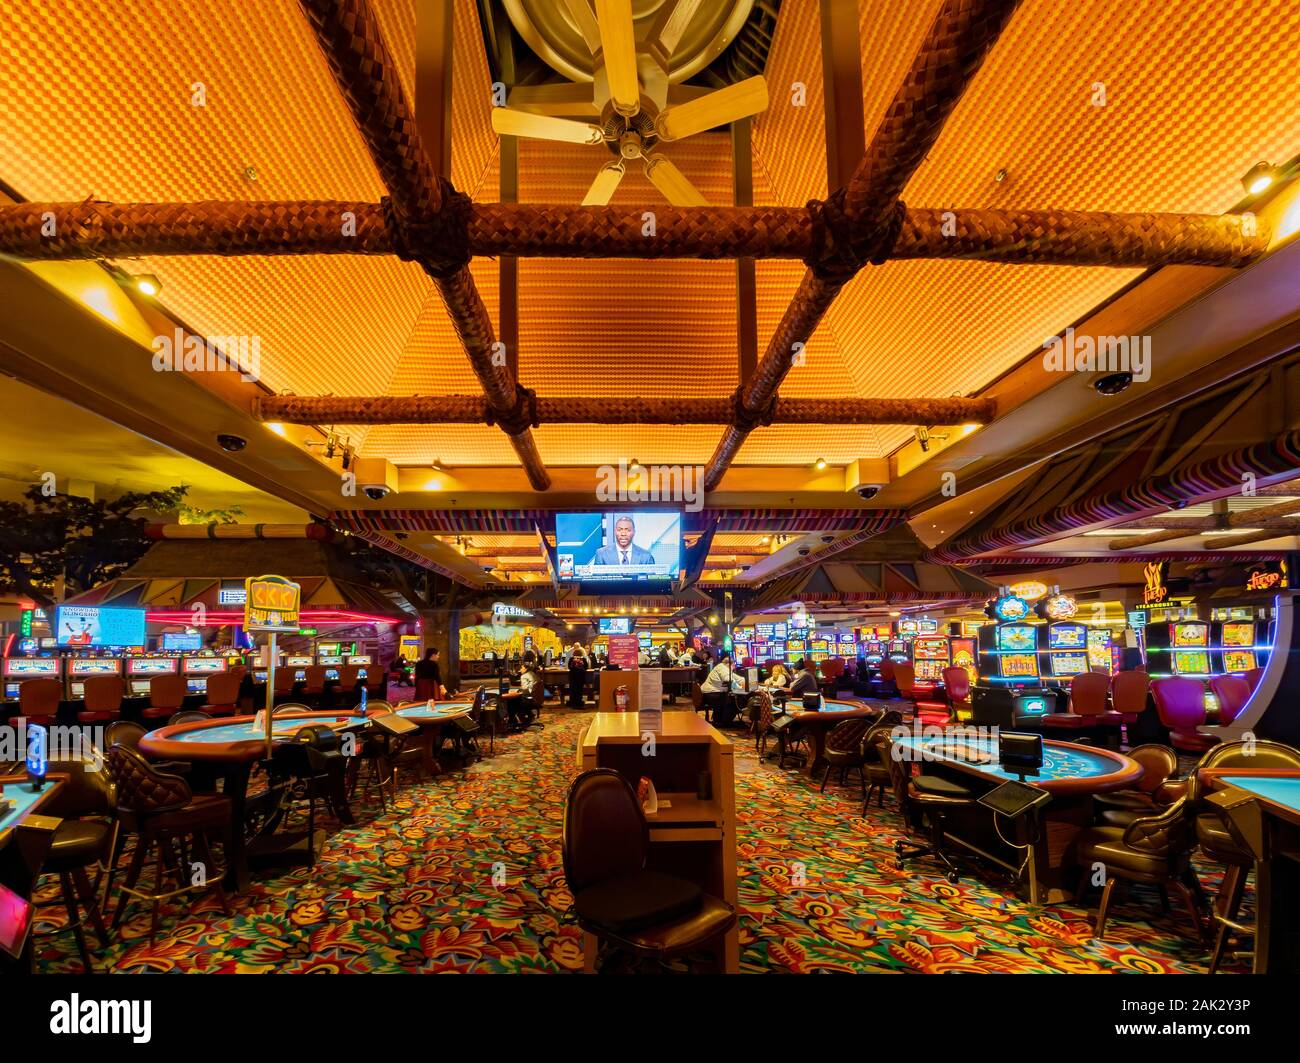 Las Vegas Jan 6 Interior View Of The Famous Fiesta Henderson